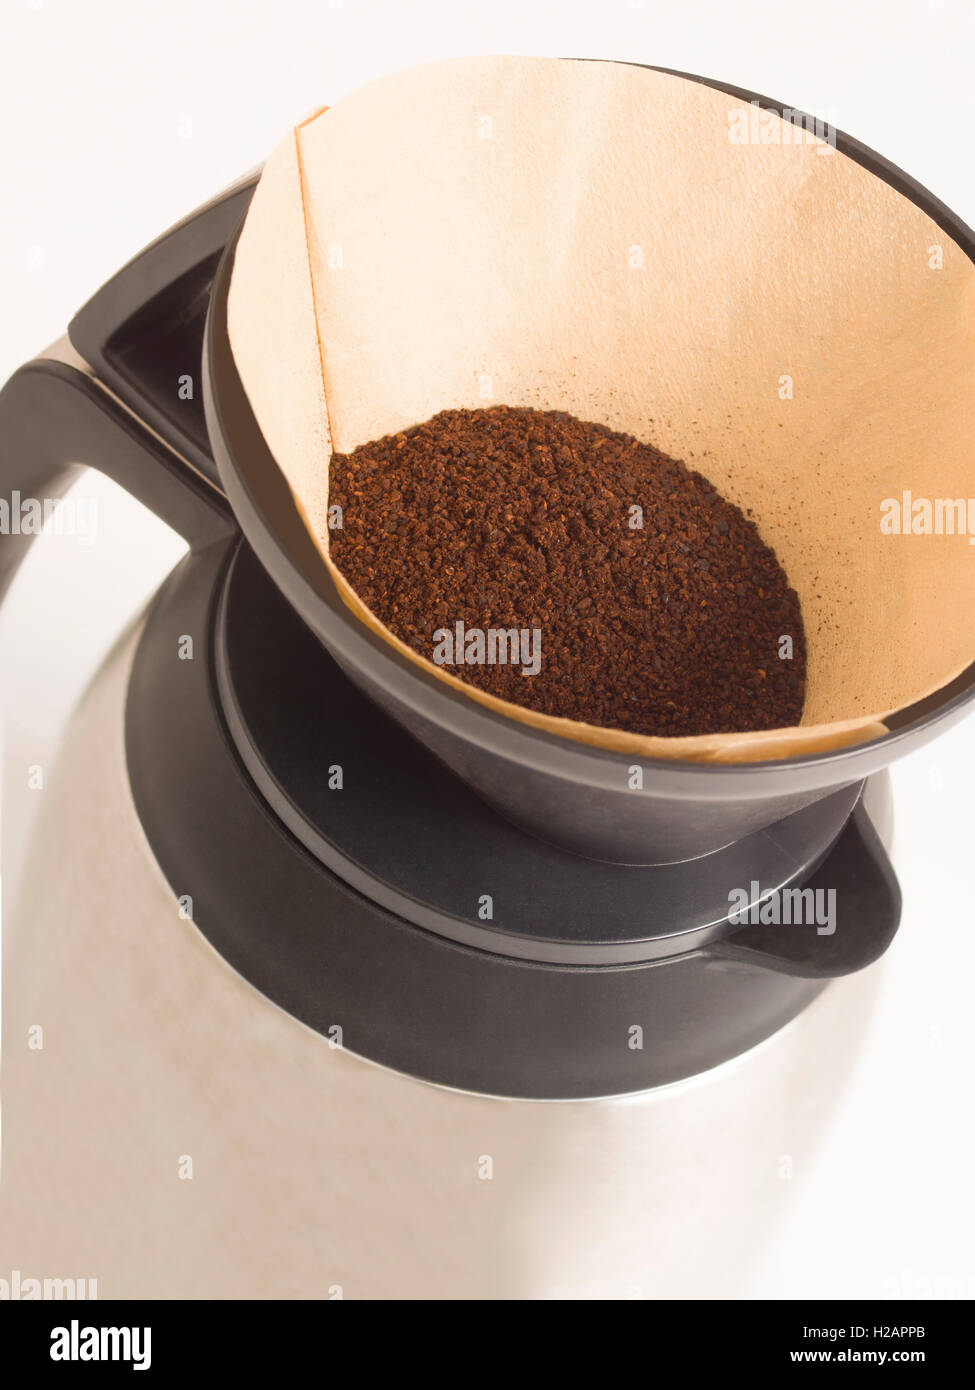 filtered drip coffee - Stock Image